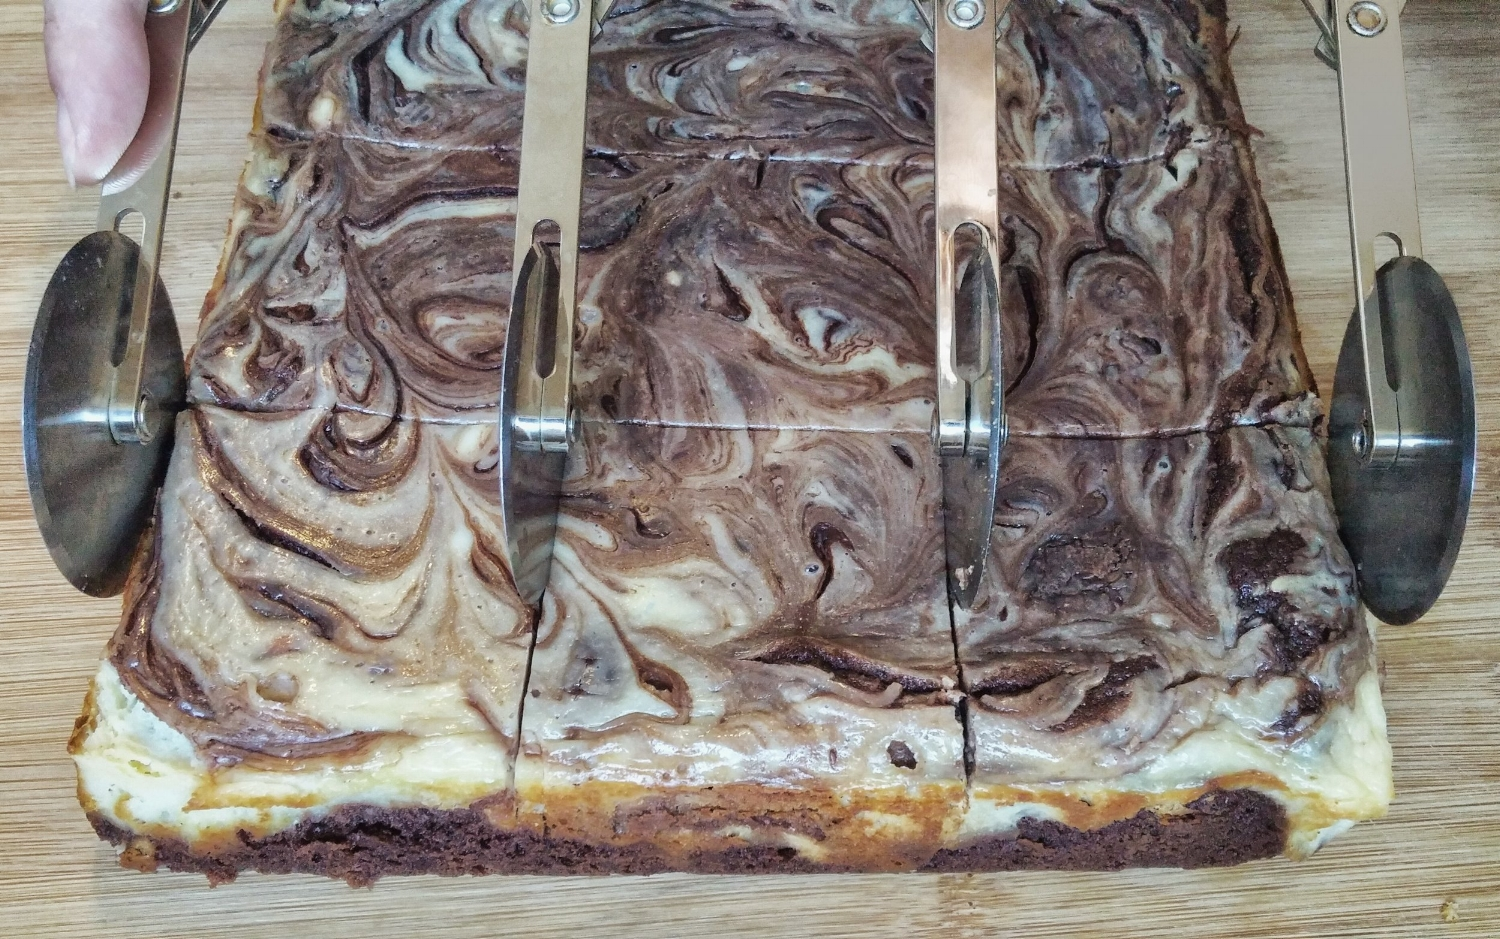 Cream Cheese and Nutella Marbled Brownies - Fudgy and Decadent